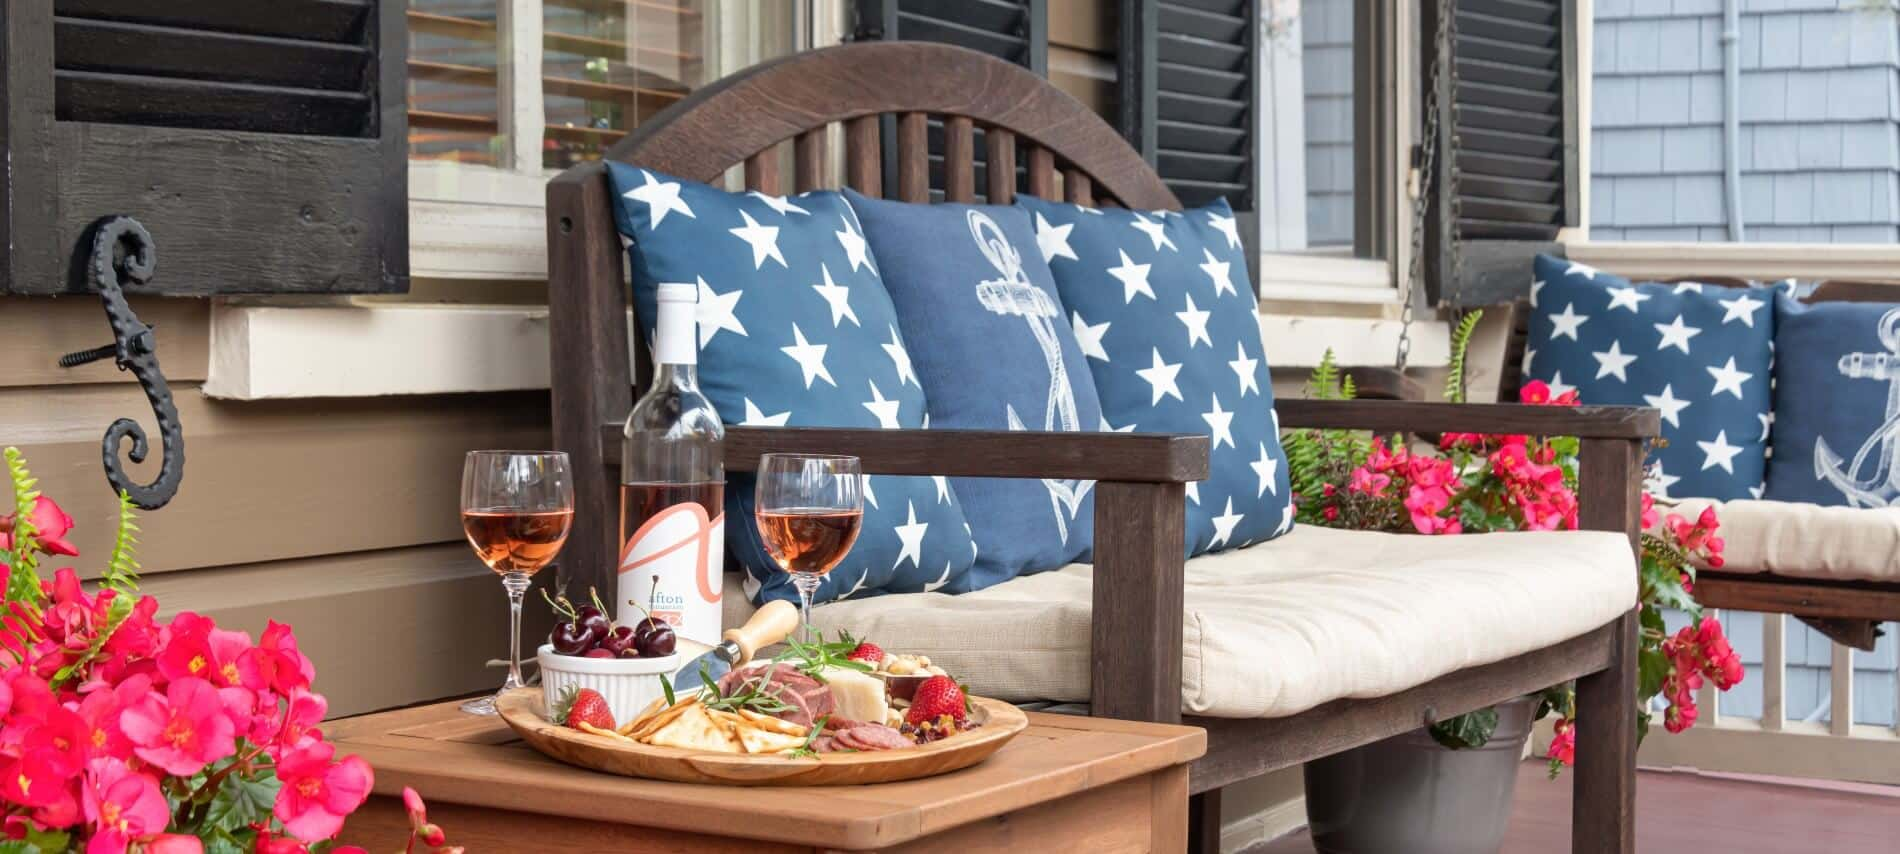 sitting bench with side table of food plate and glasses of wine